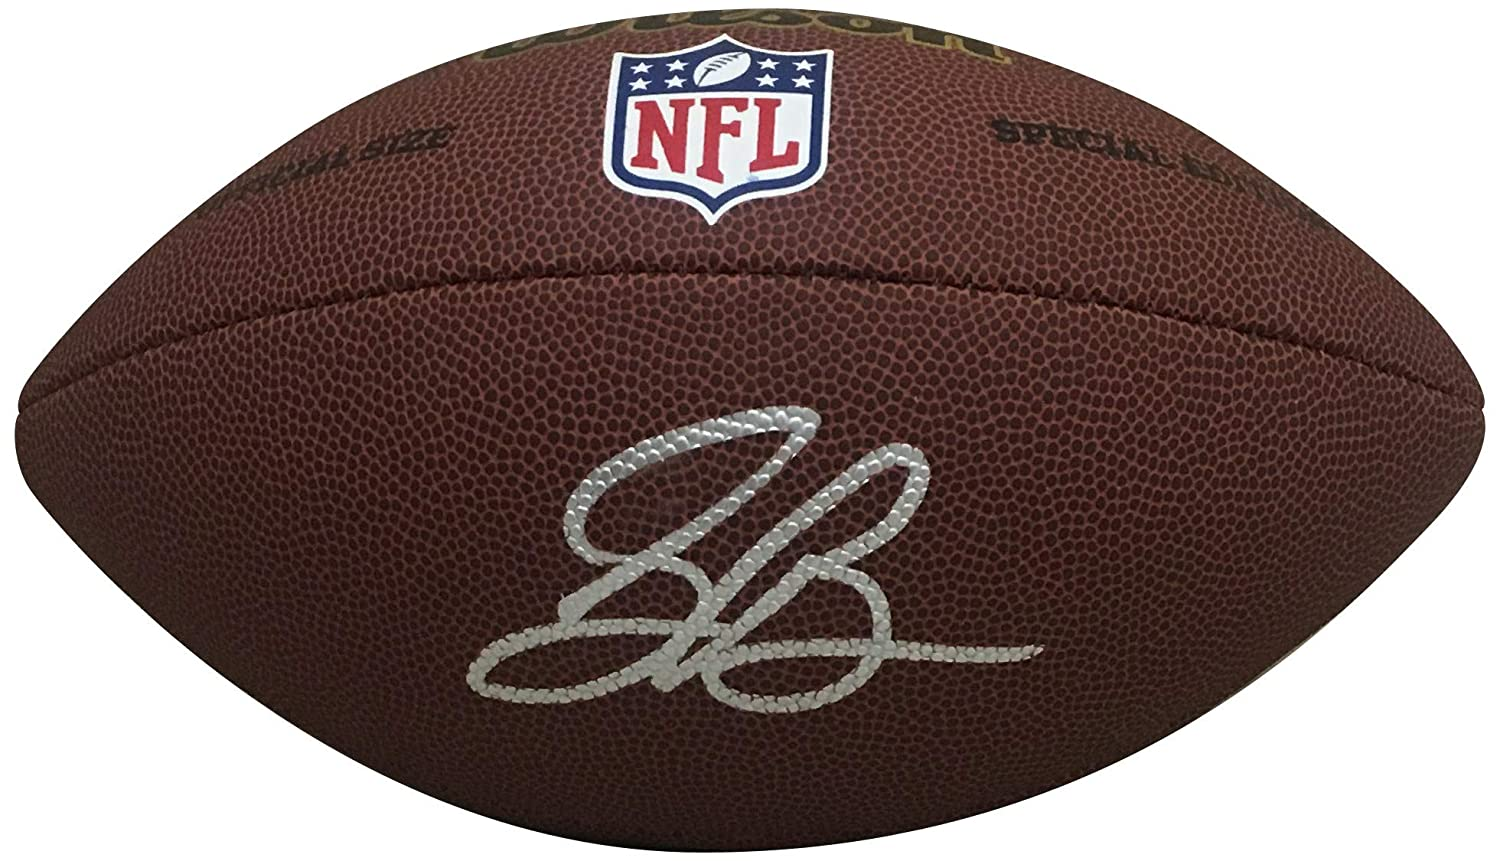 Saquon Barkley New York Giants Autographed NFL Signed Football JSA COA Powers Collectibles